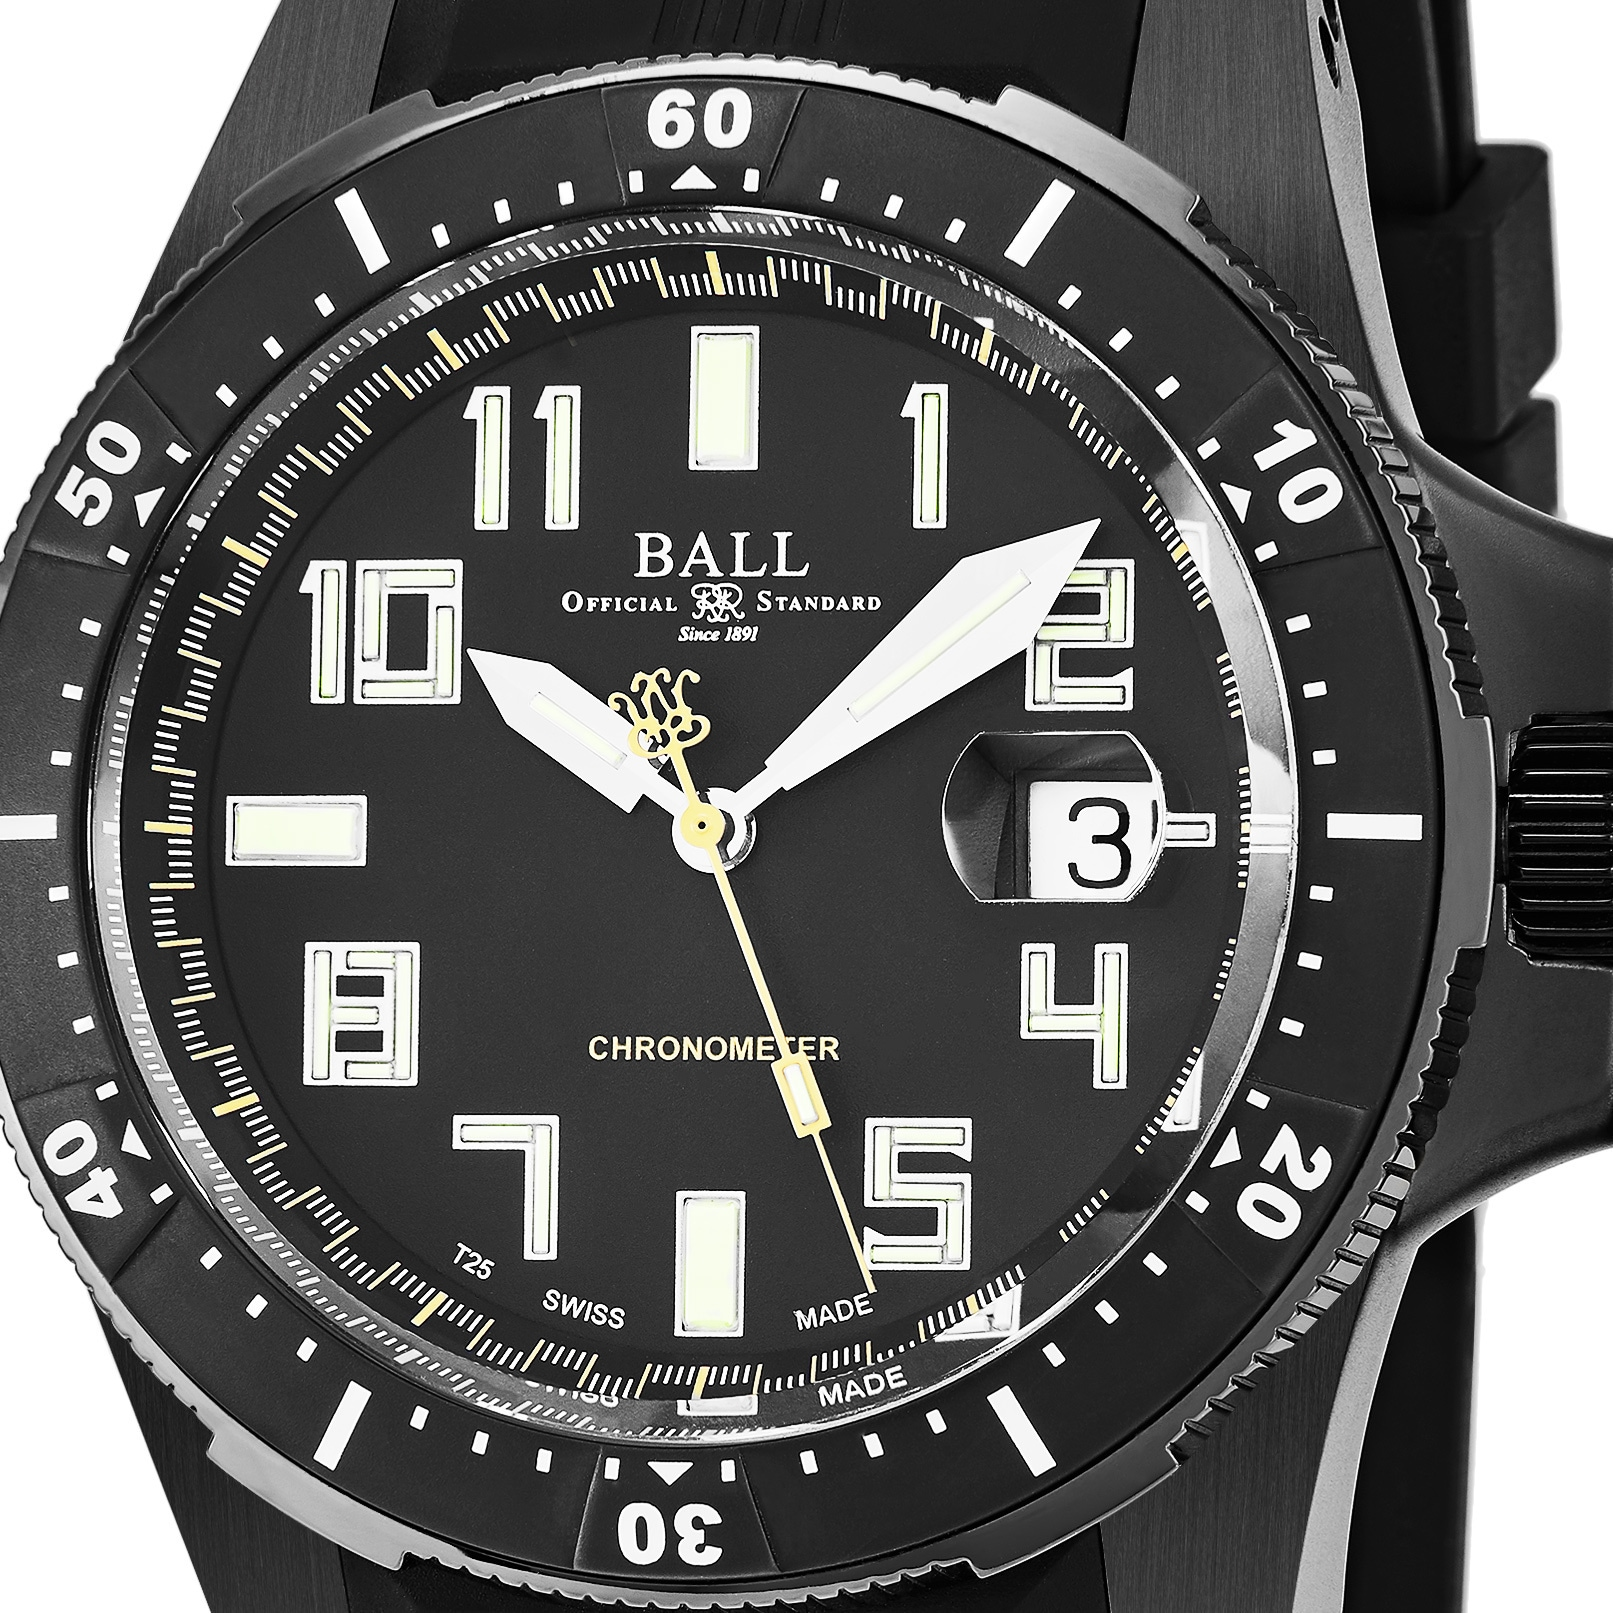 engineer master ii diver official automatic standard watches ball chronograph sales large